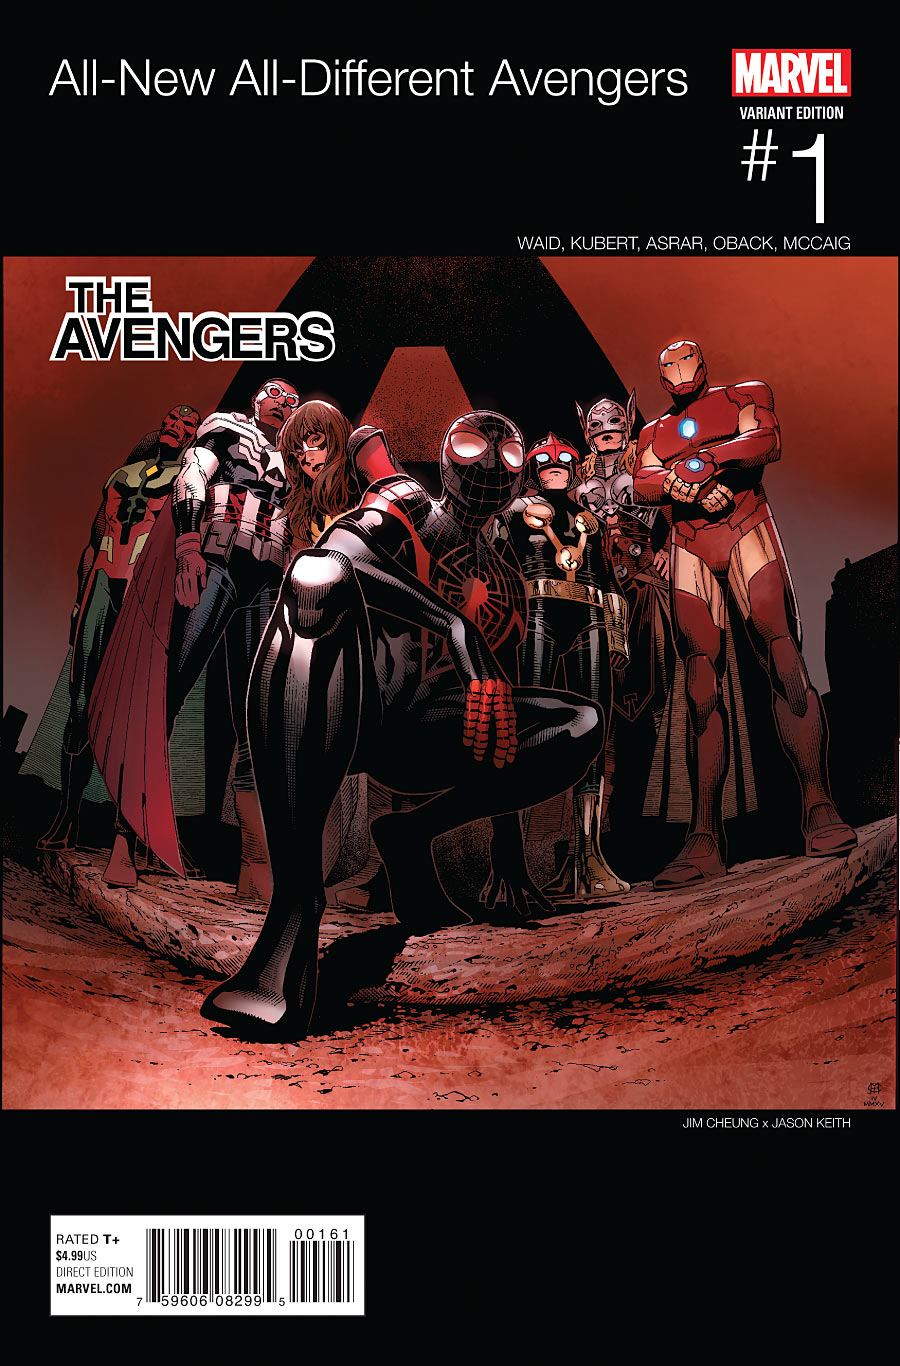 All-New, All-Different Avengers Vol 1 1 Hip-Hop Variant.jpg